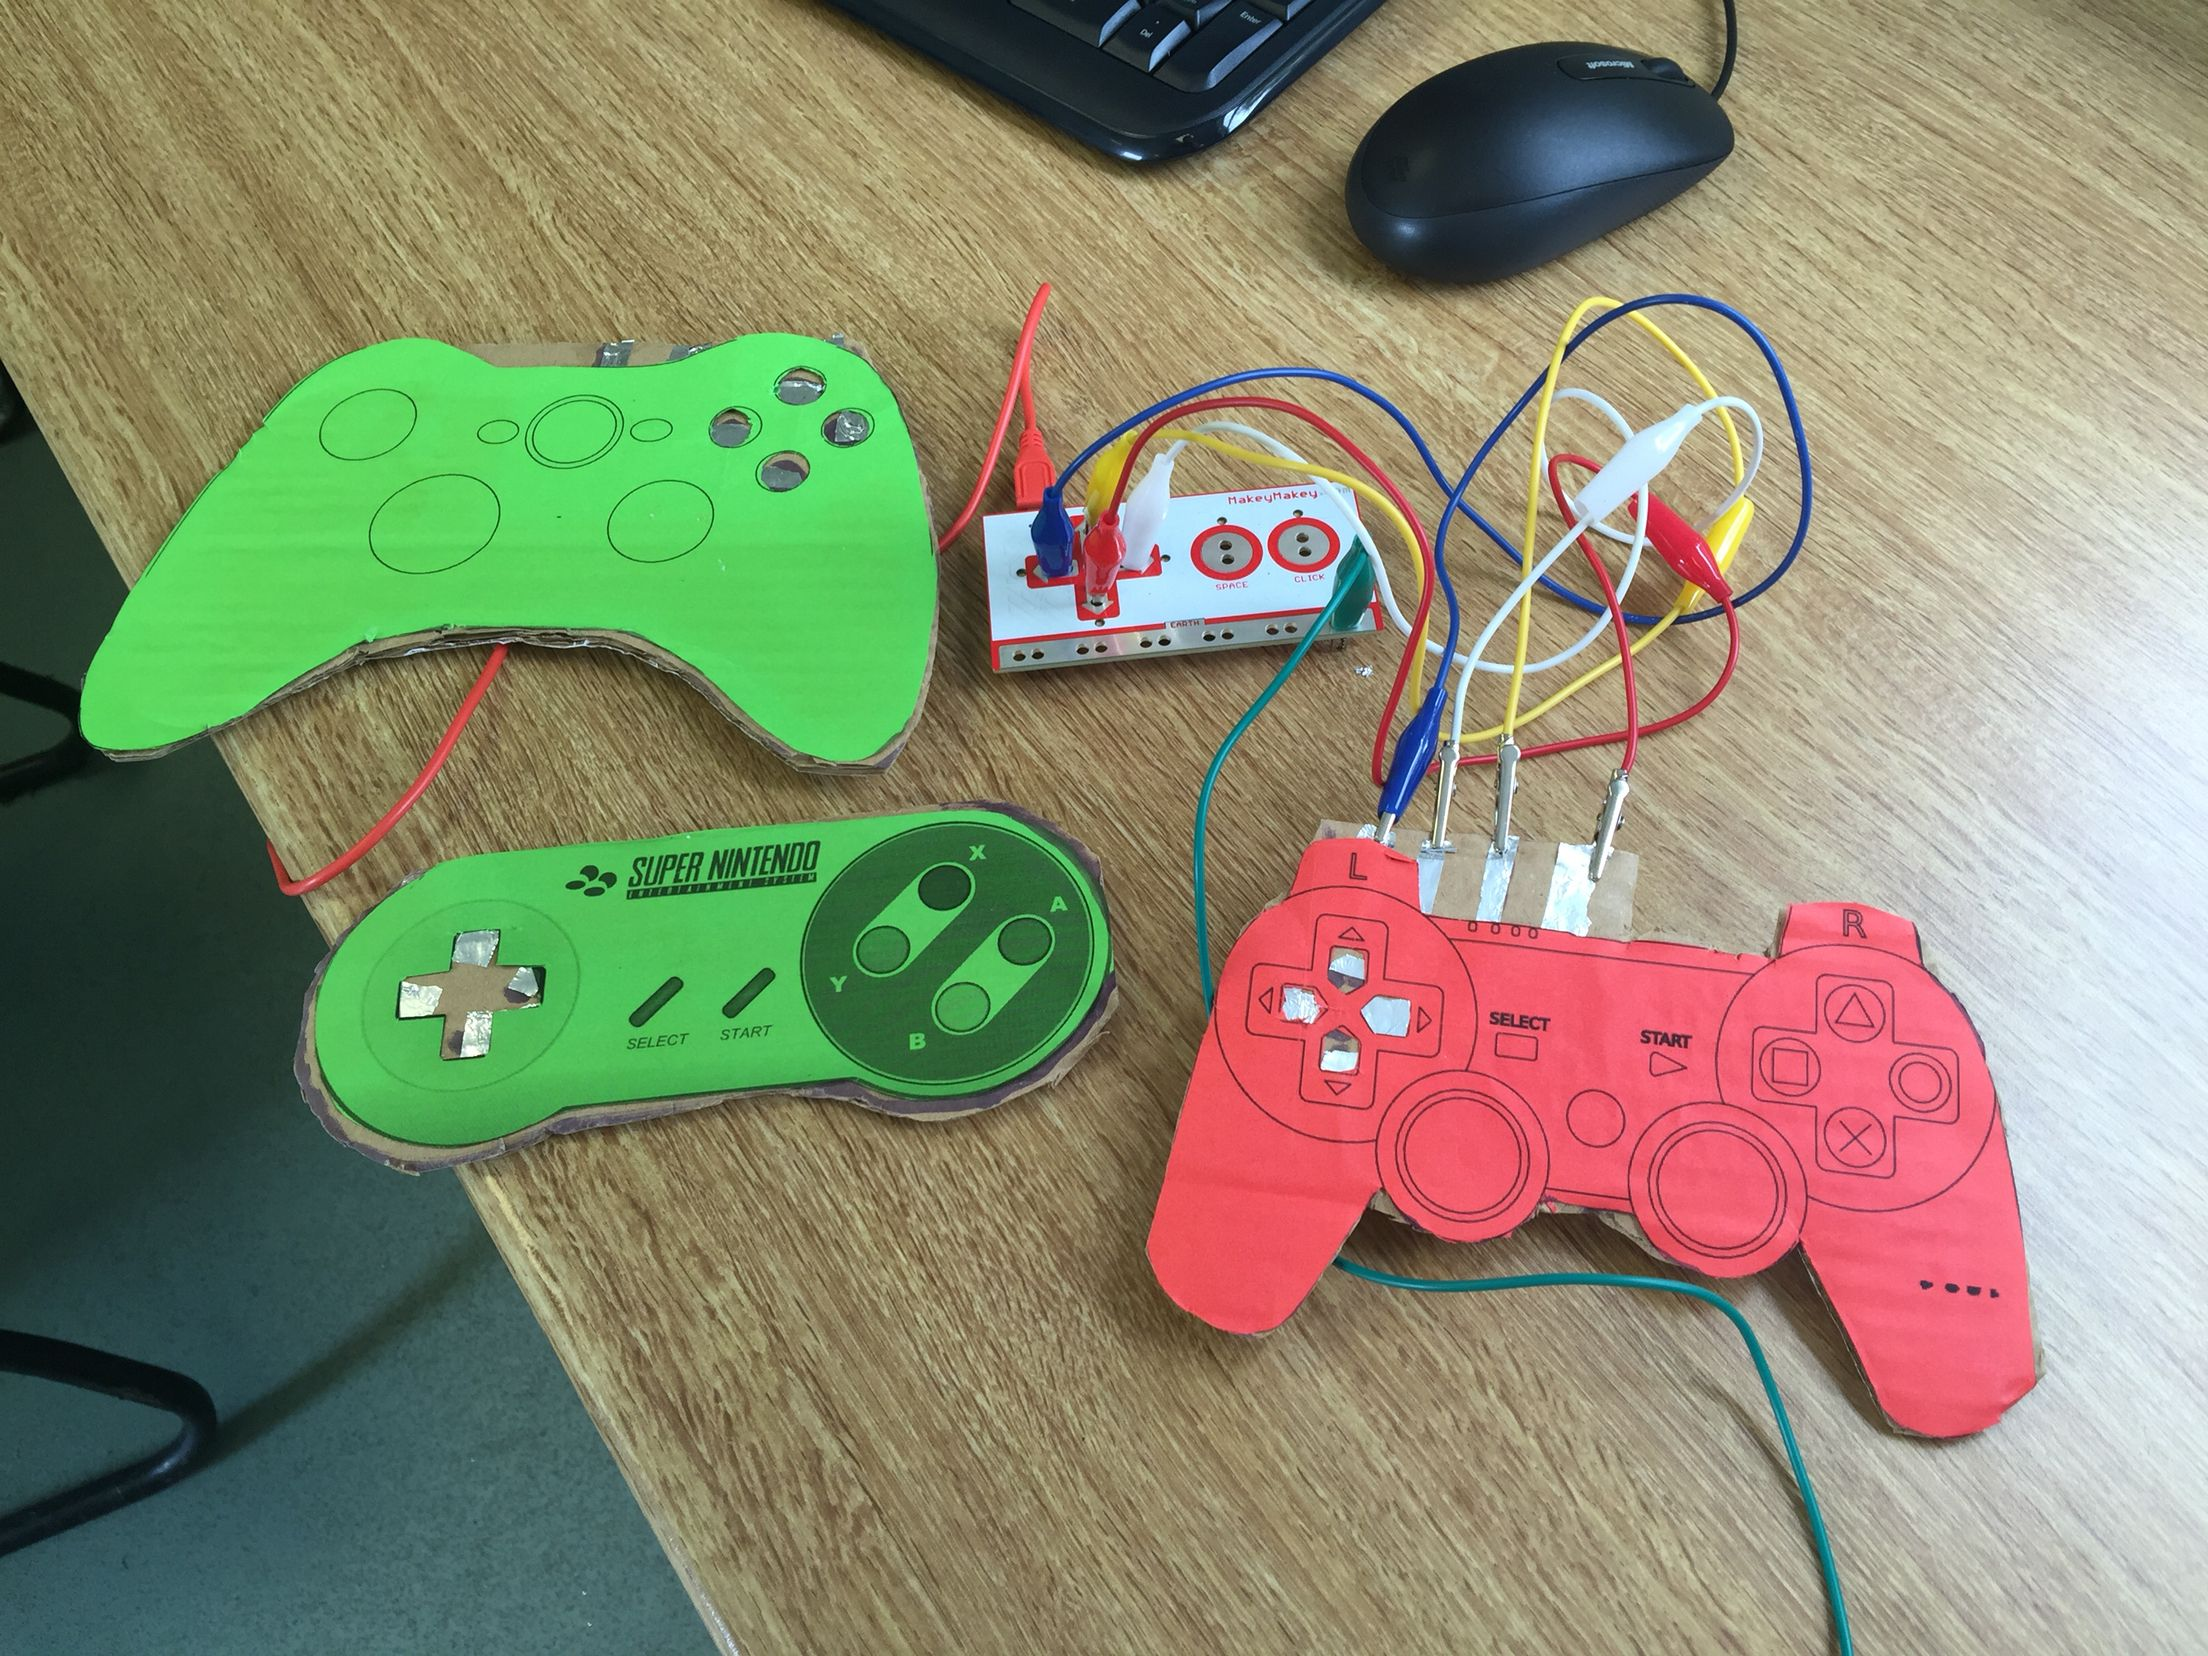 Image result for makey makey controller